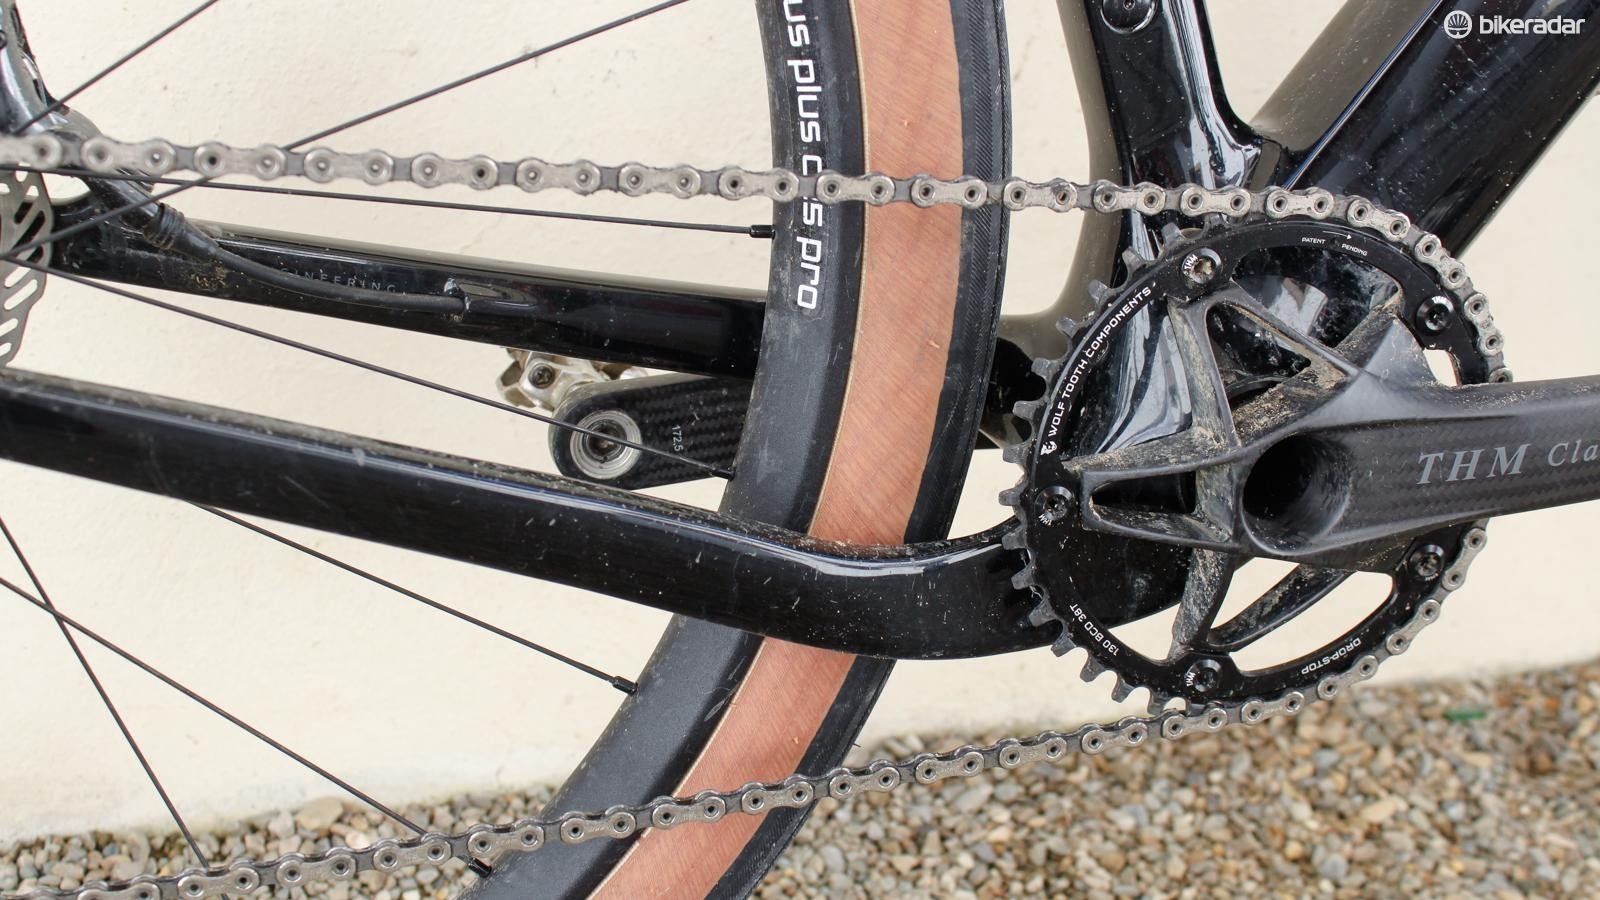 The right chainstay is dropped to clear the tire and cranks